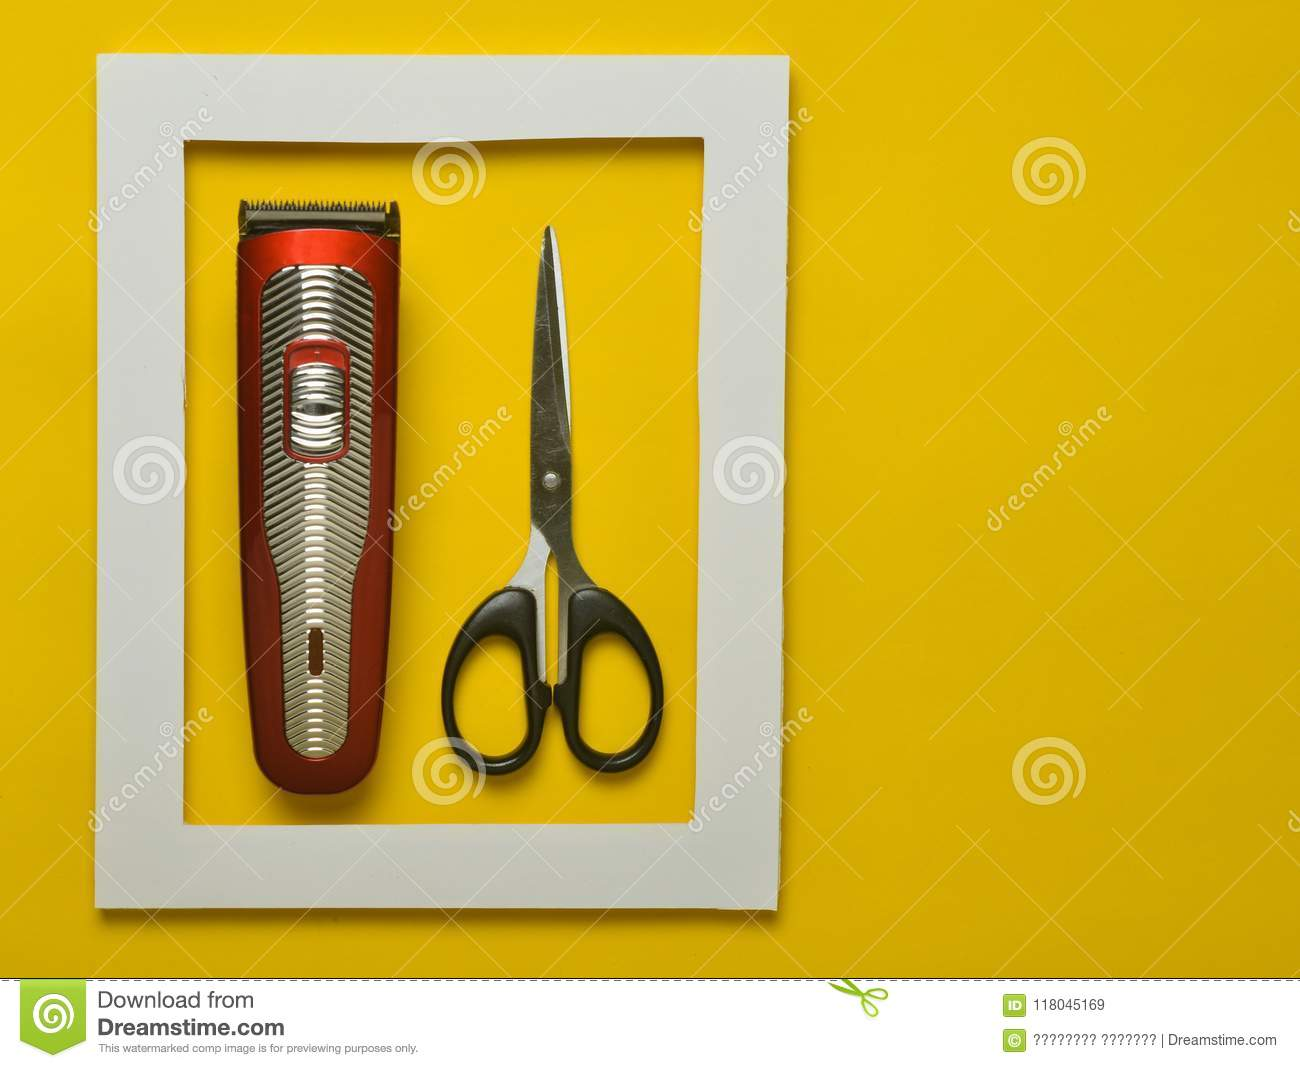 The Machine For A Hairstyle And Scissors In A White Frame On A